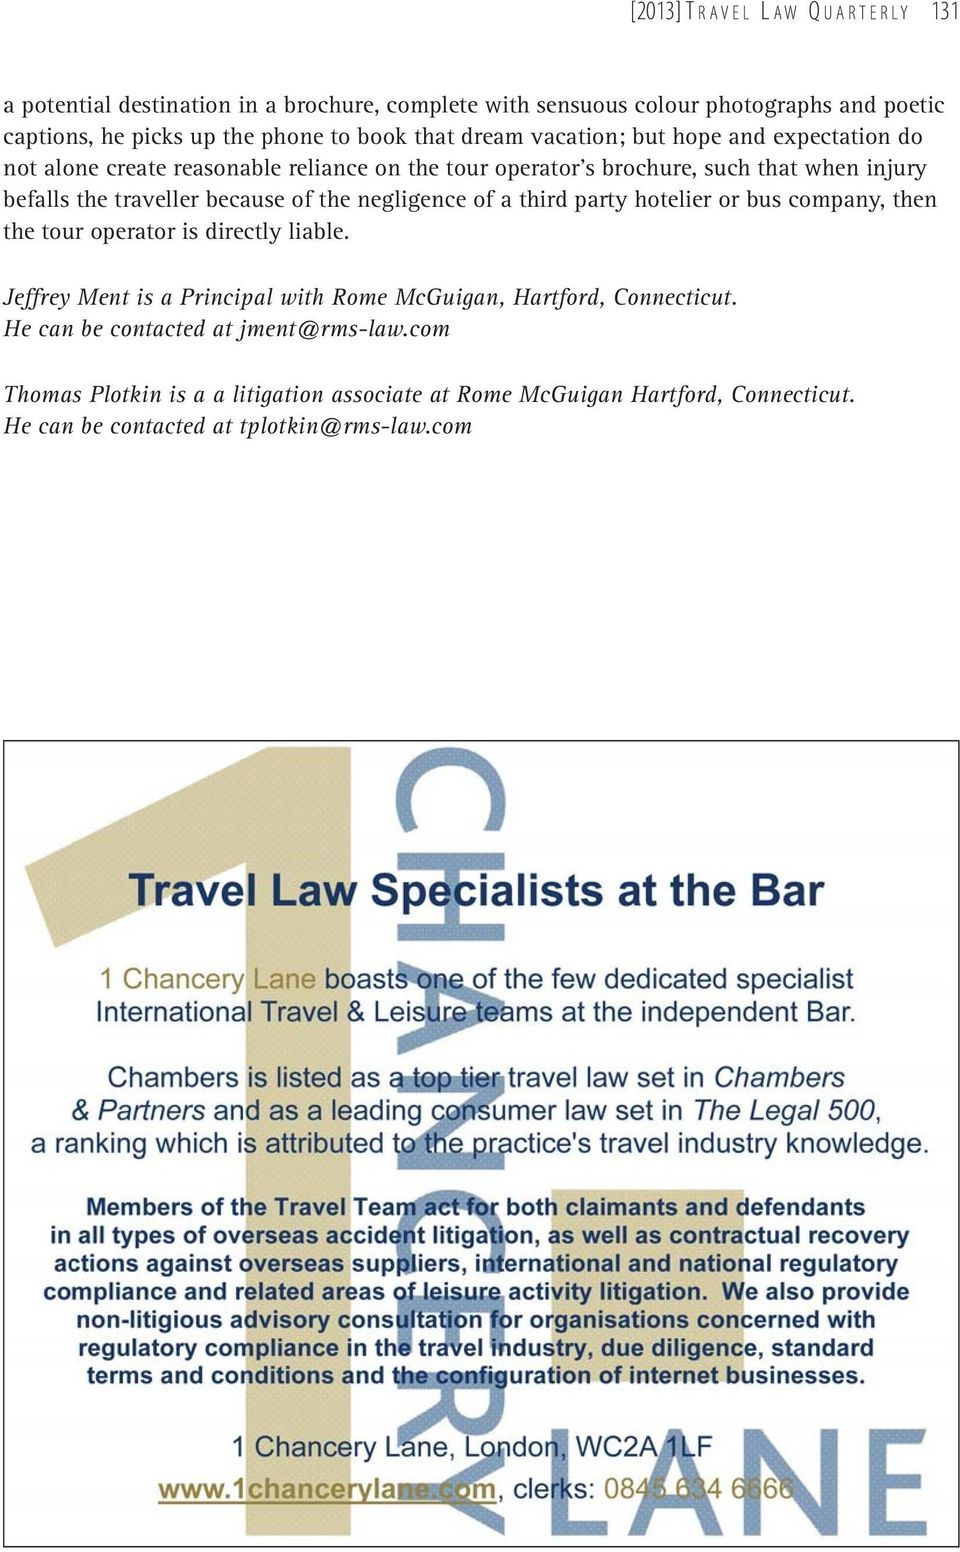 because of the negligence of a third party hotelier or bus company, then the tour operator is directly liable.